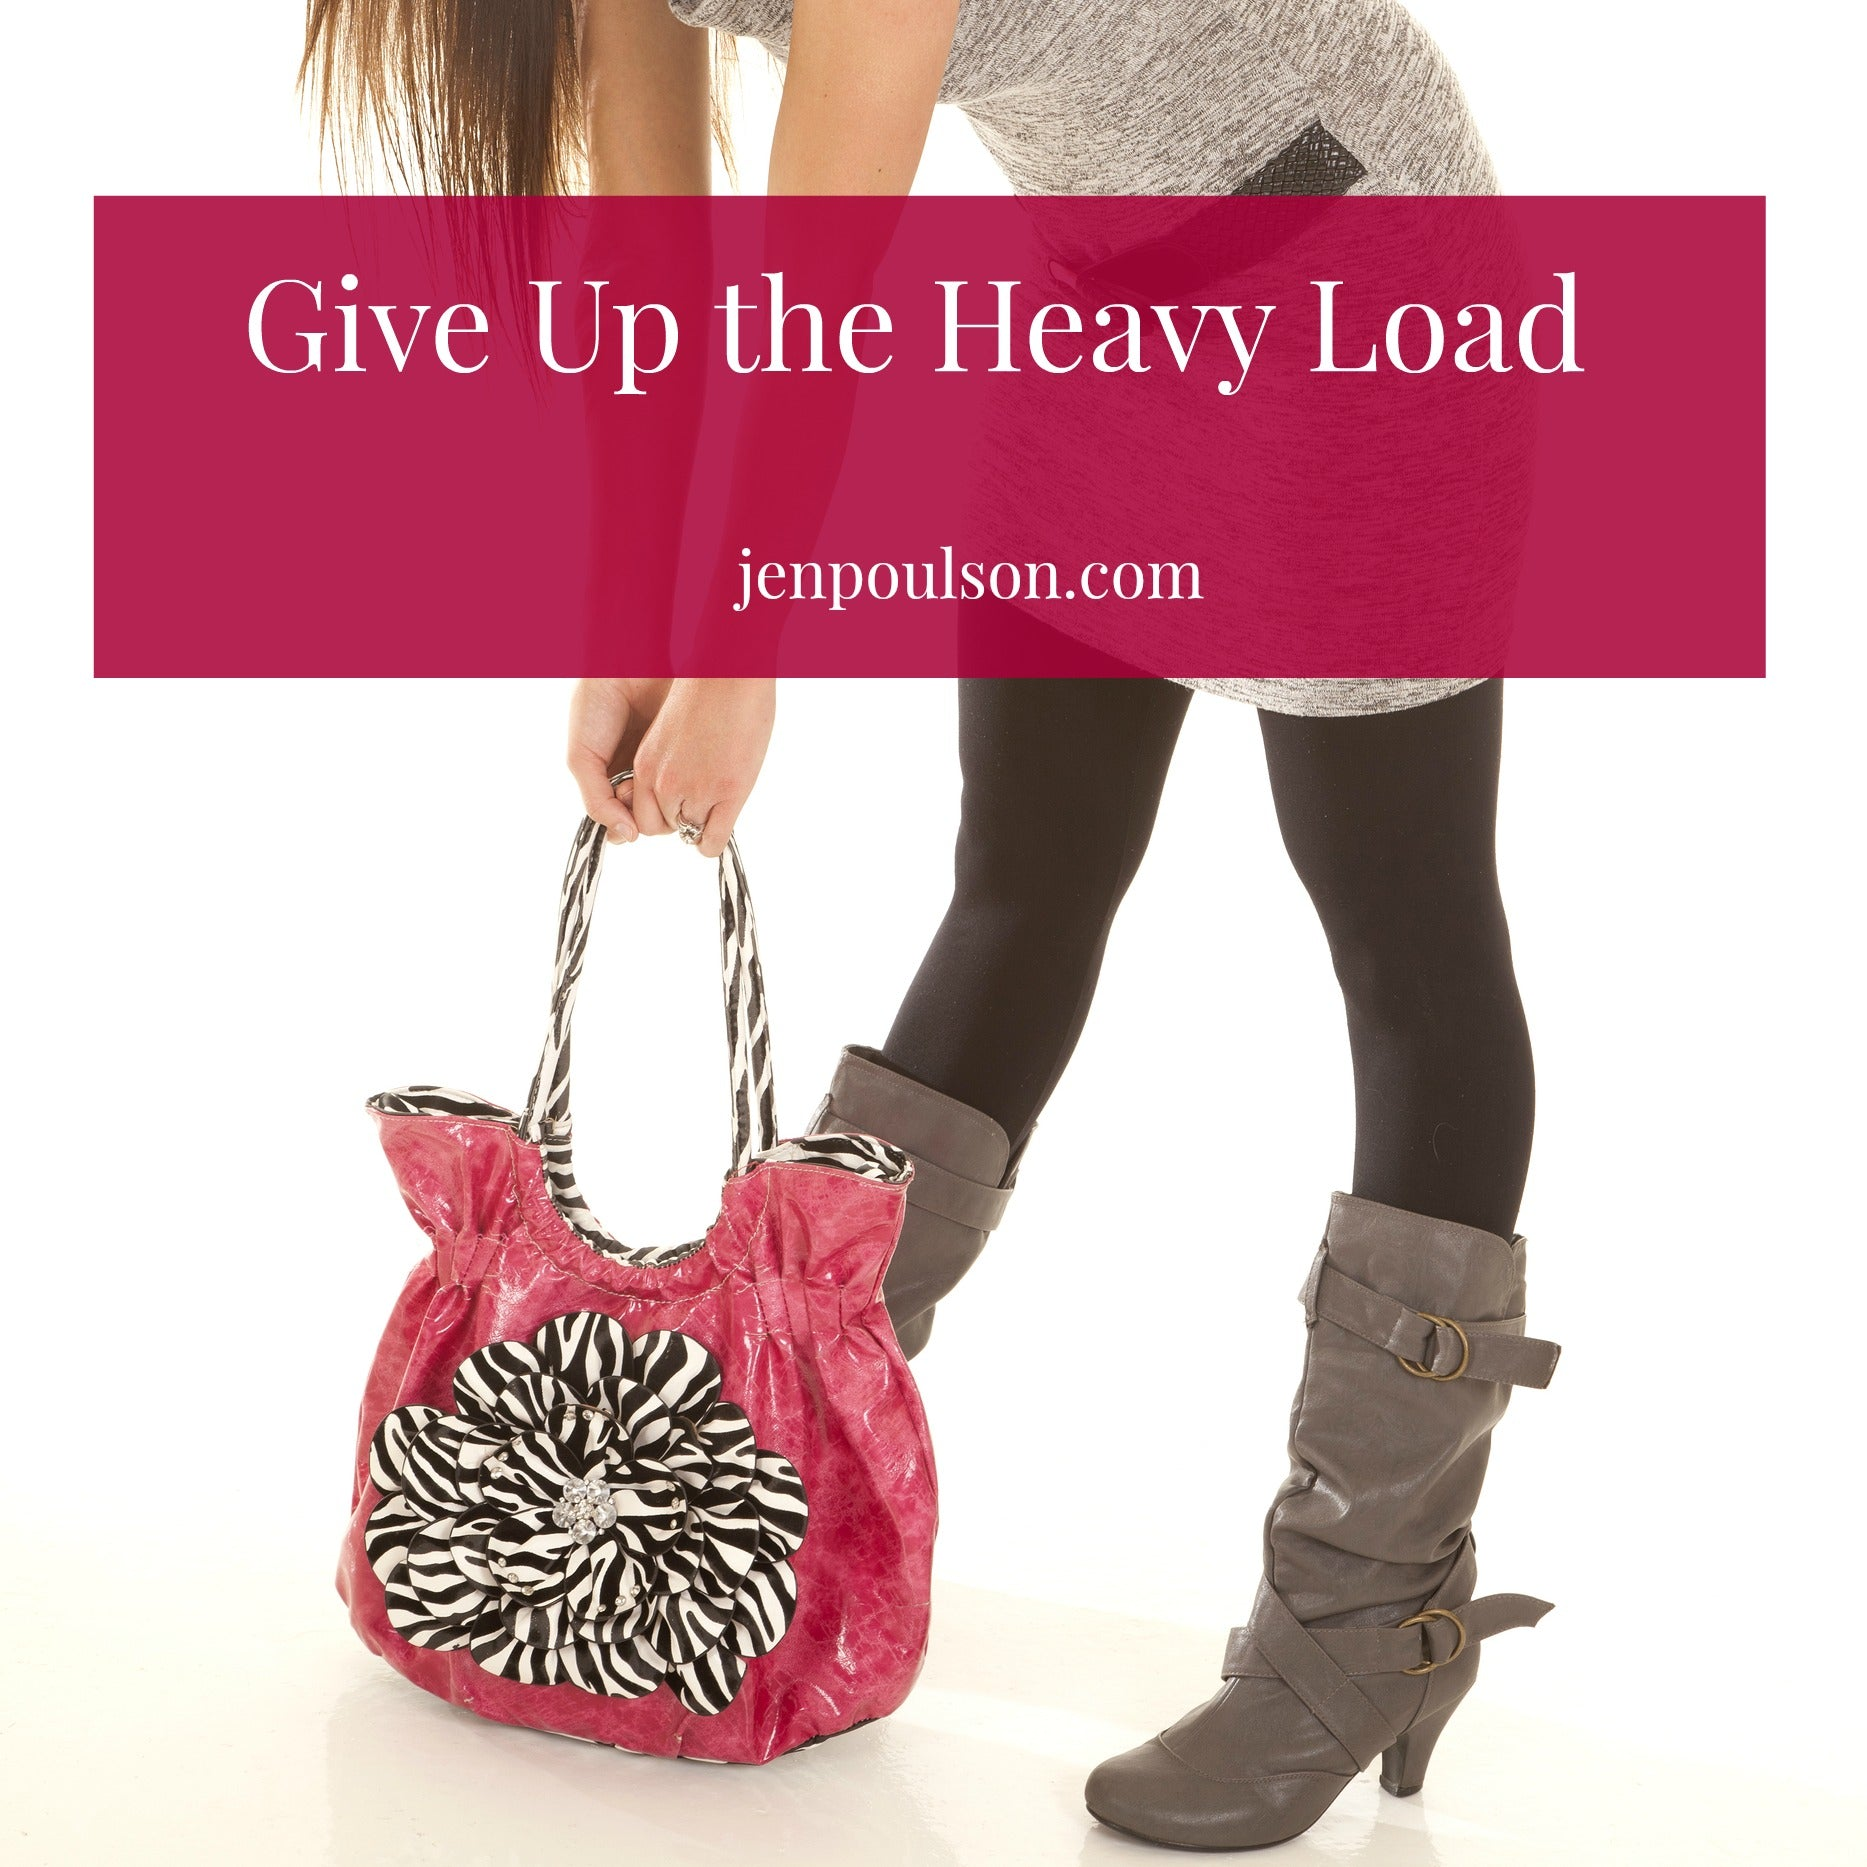 Give up the heavy load